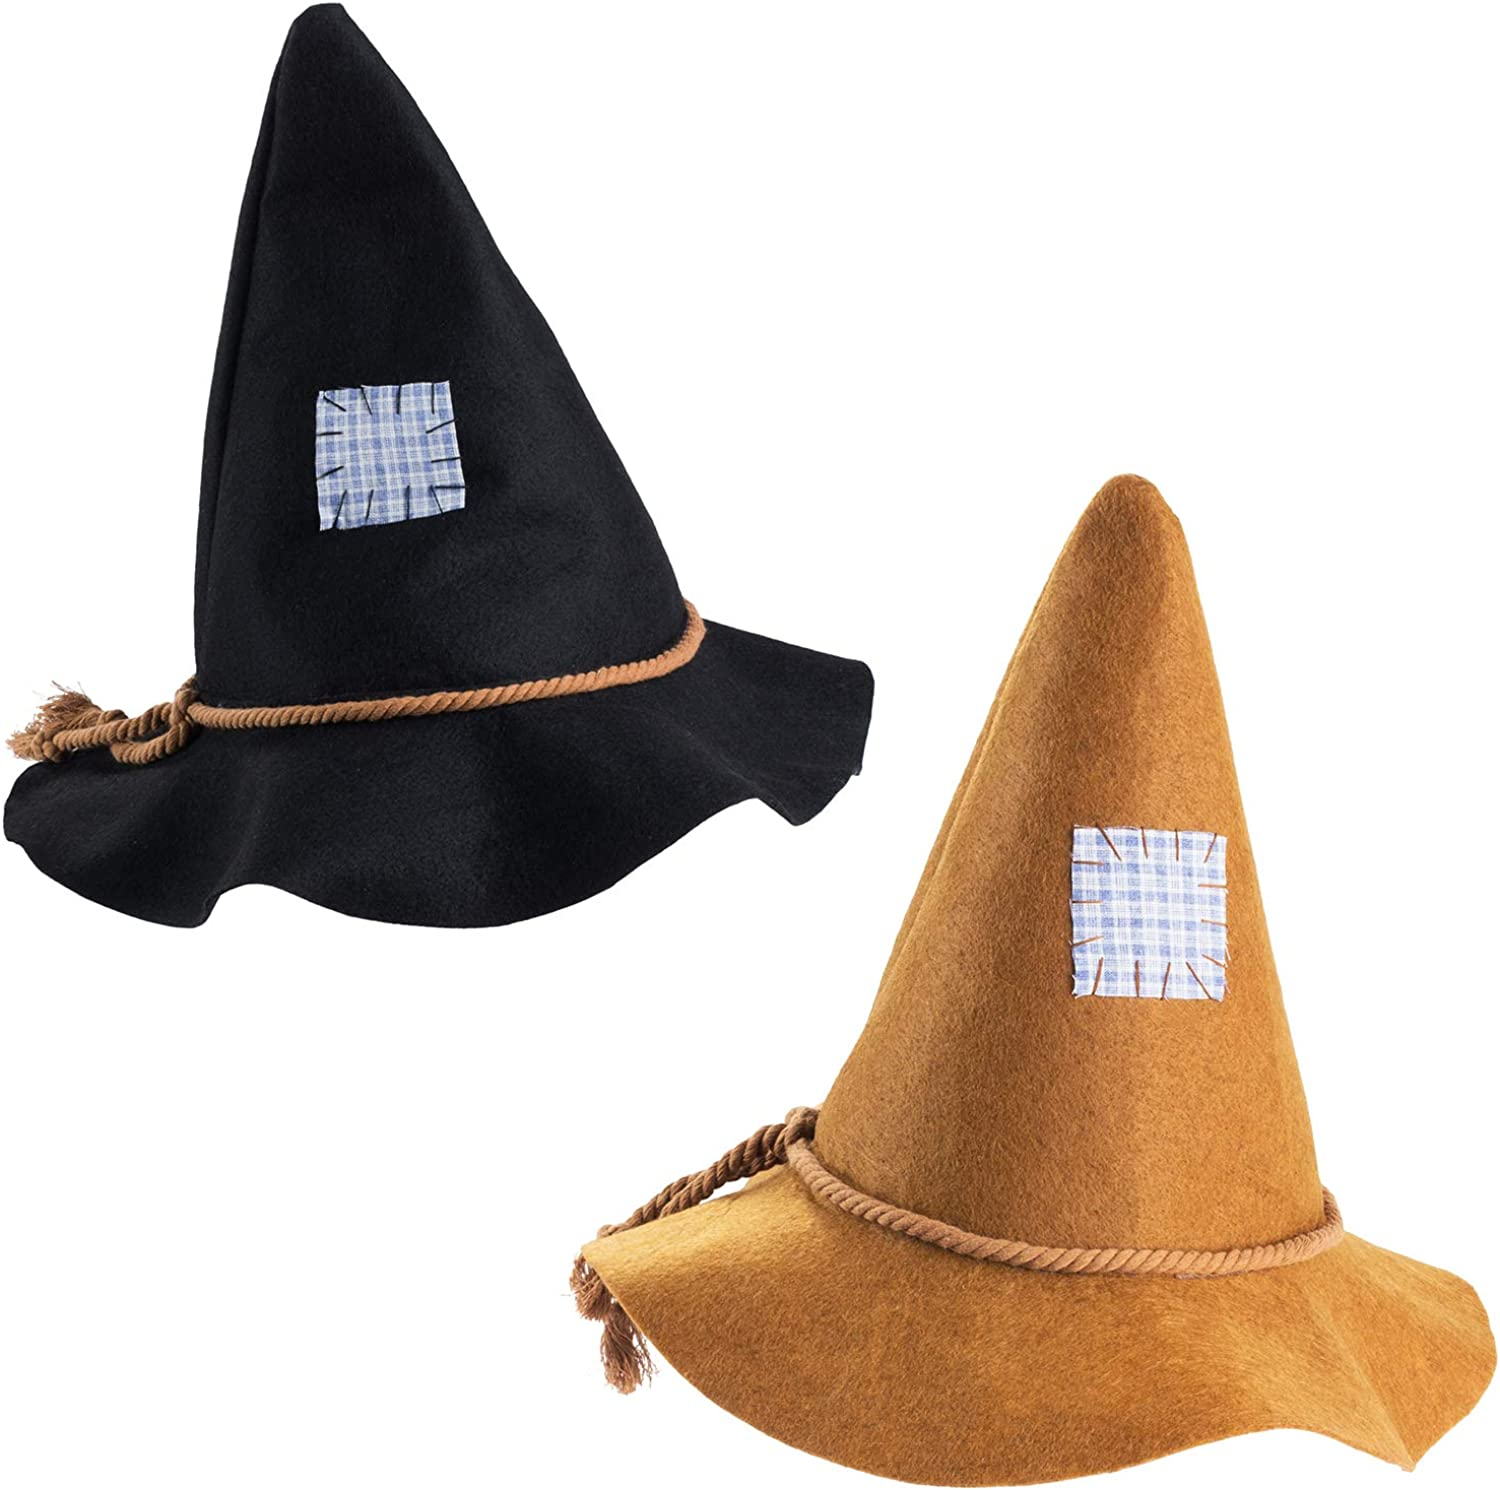 Tigerdoe Scarecrow Hats 2 Pack - Halloween Scarecrow Costume - Felt Scarecrow Accessories